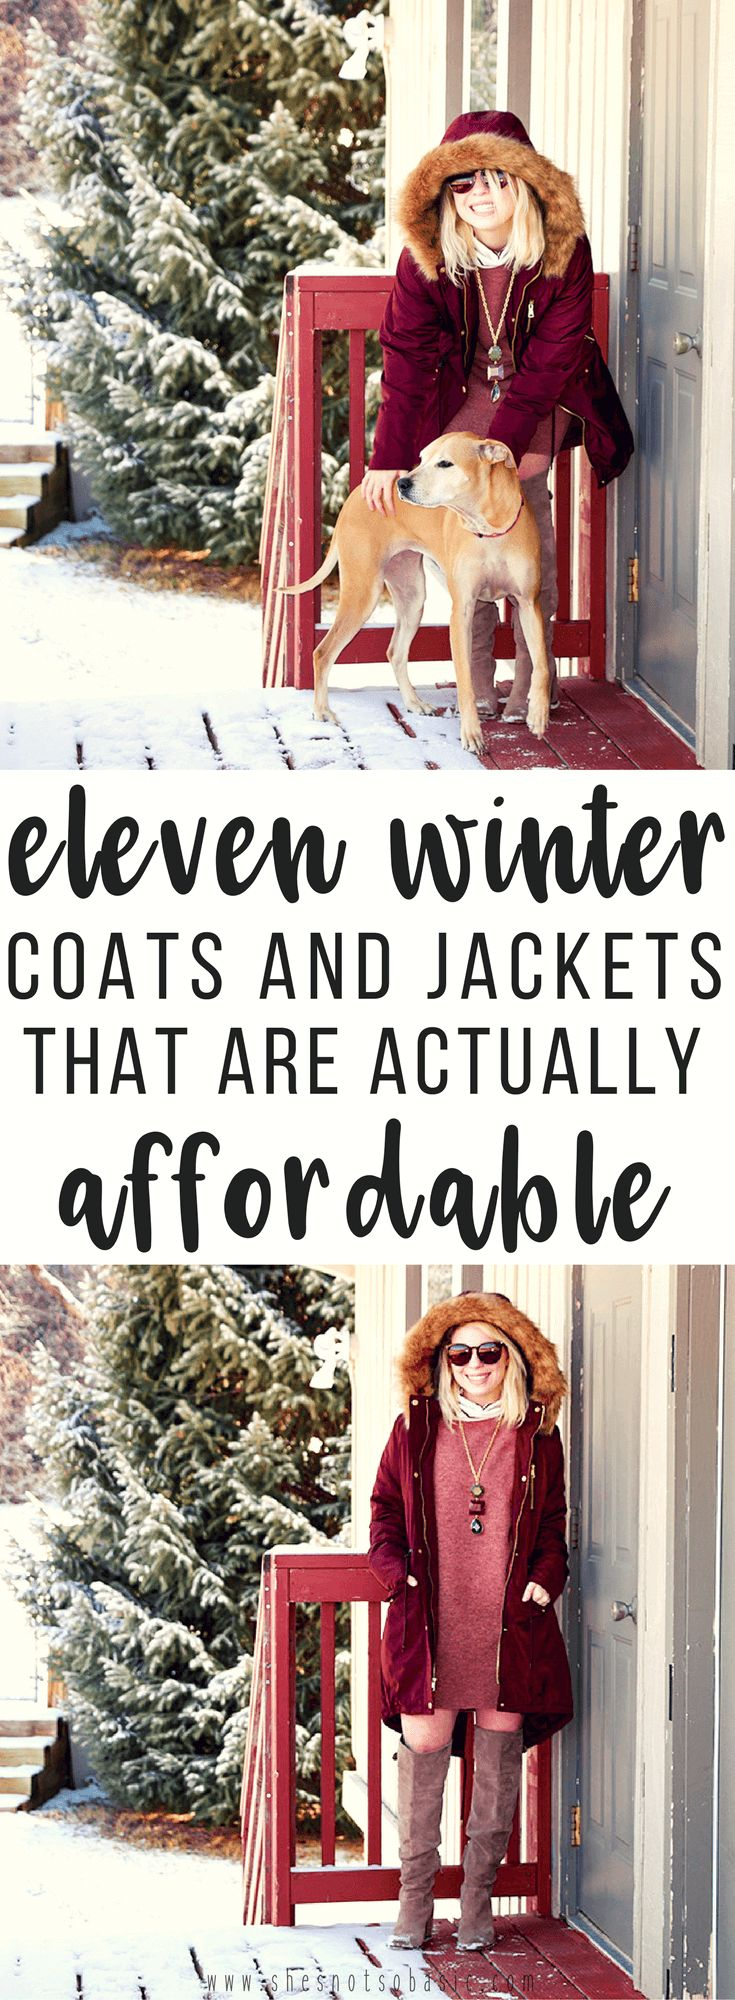 Stop what you're doing and shop these super cute and affordable winter coats and jackets!   winter style, winter coats, winter jackets, women's winter fashion, winter fashion, affordable fashion, affordable winter clothes, #winterstyle #winterfashion #affordablestyle